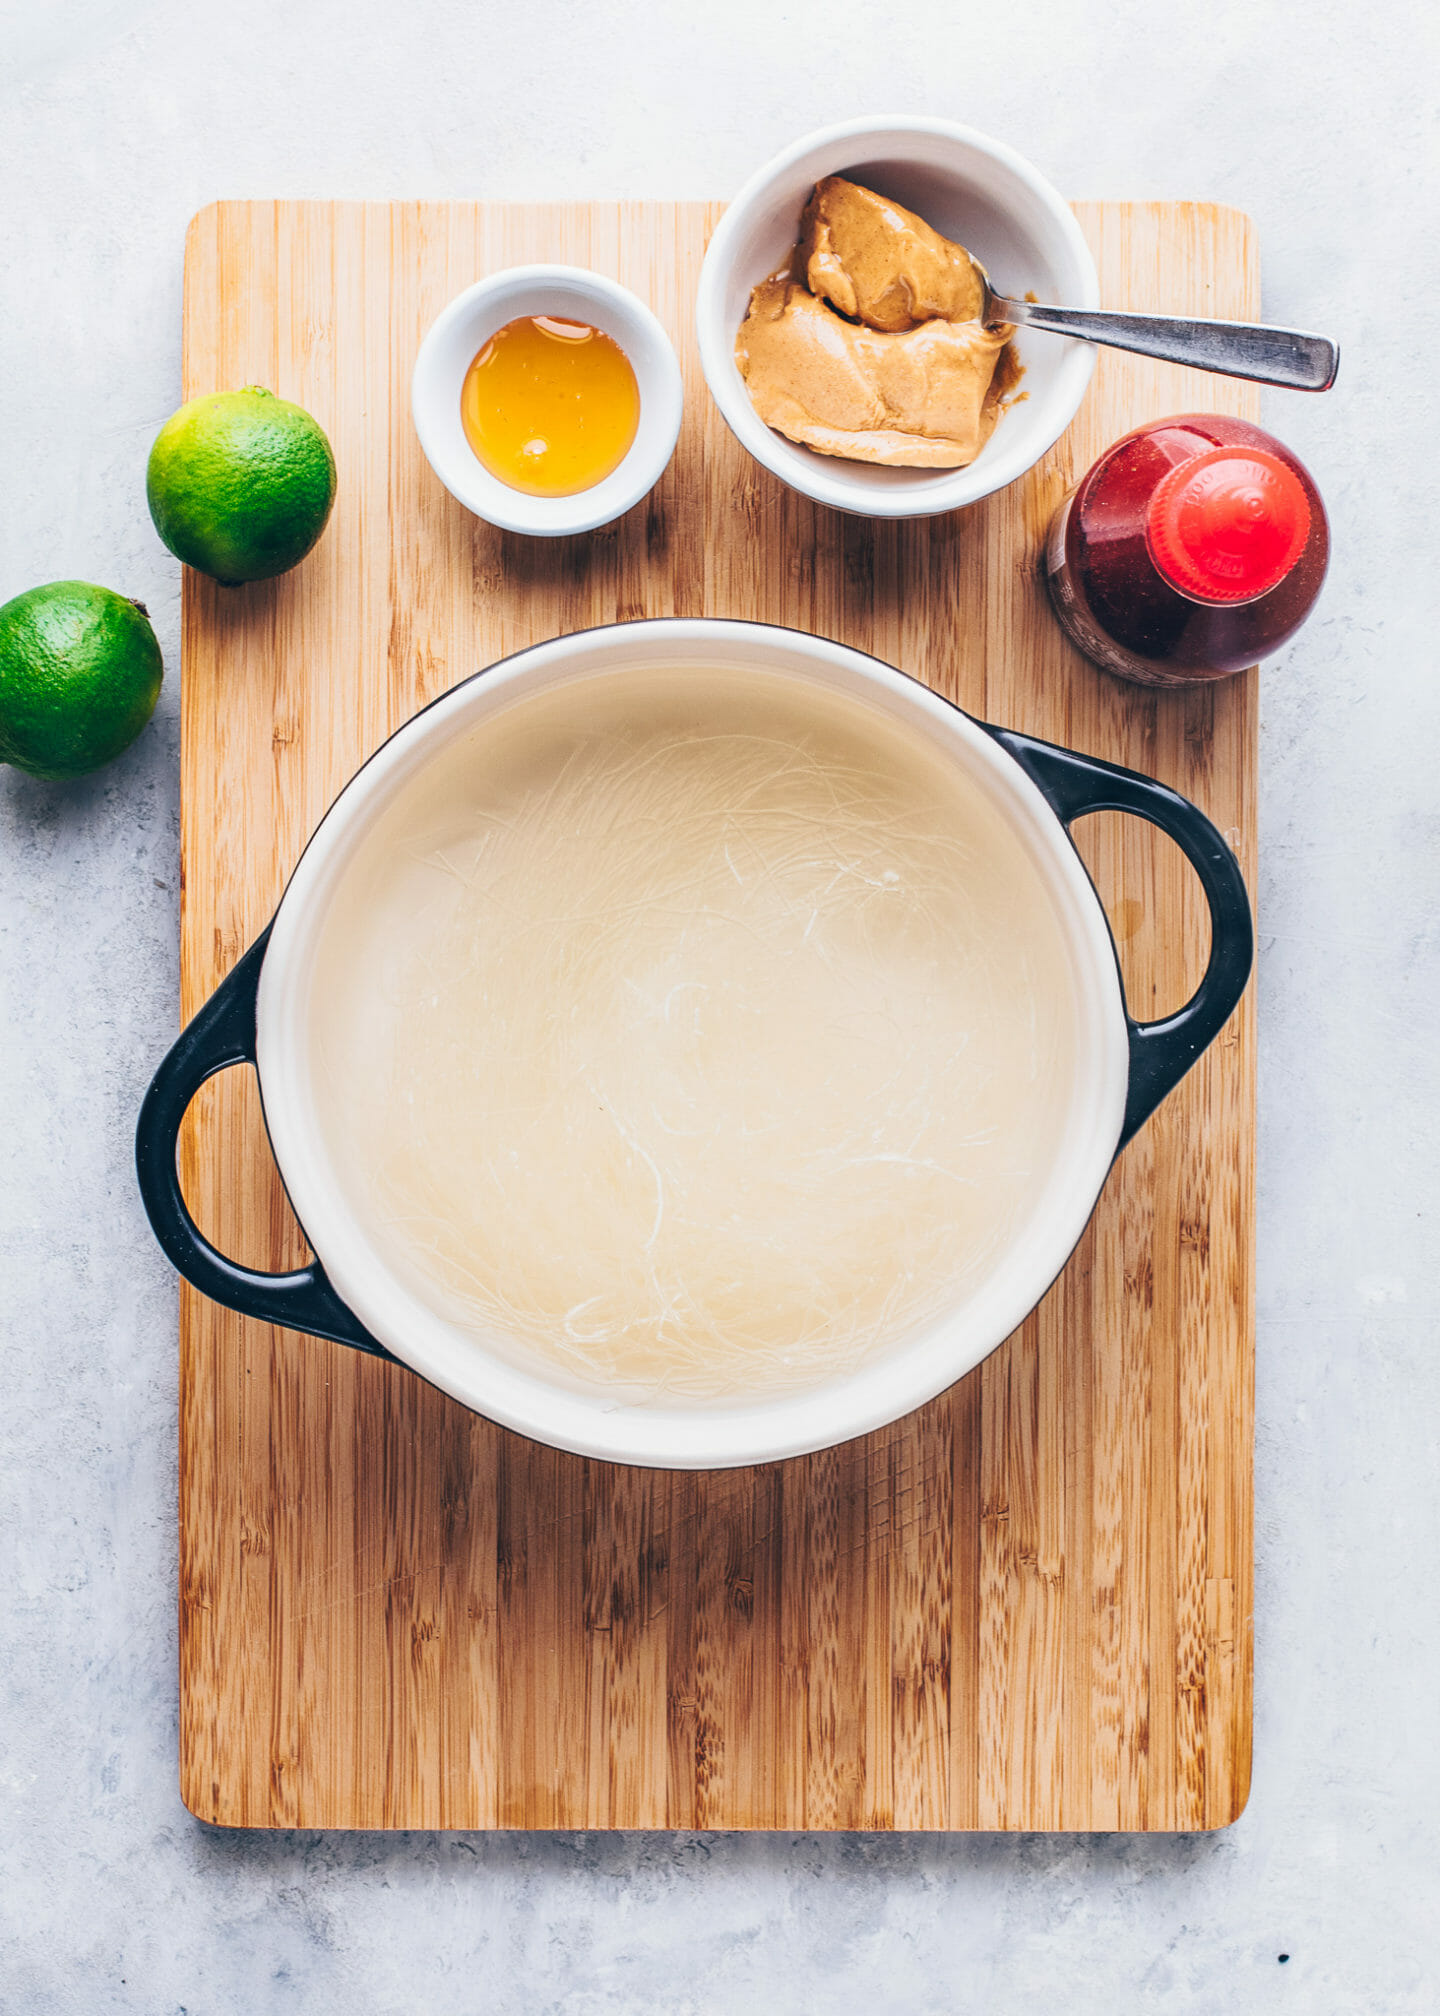 rice noodles soaked in hot water